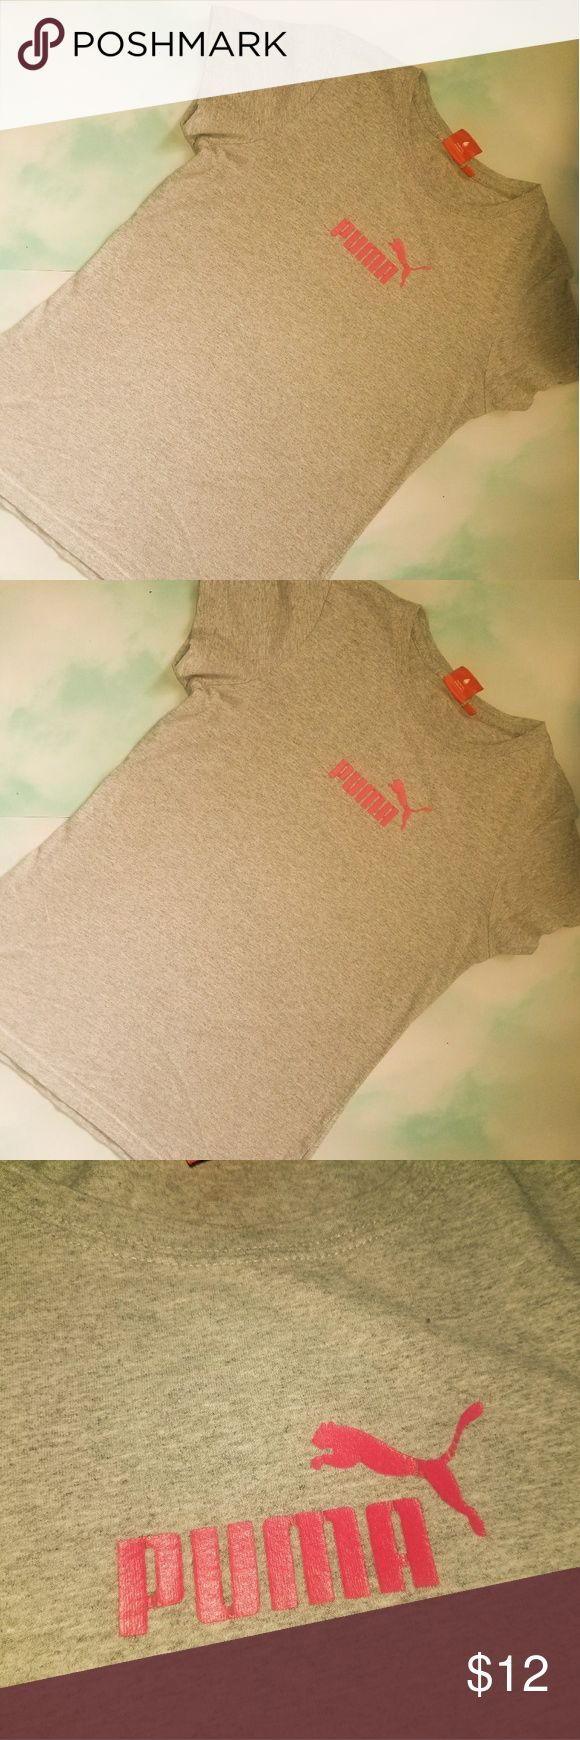 Puma shirt Puma shirt grey and Pink. Pre loved in great condition.  Size medium.. puma Tops Tees - Short Sleeve